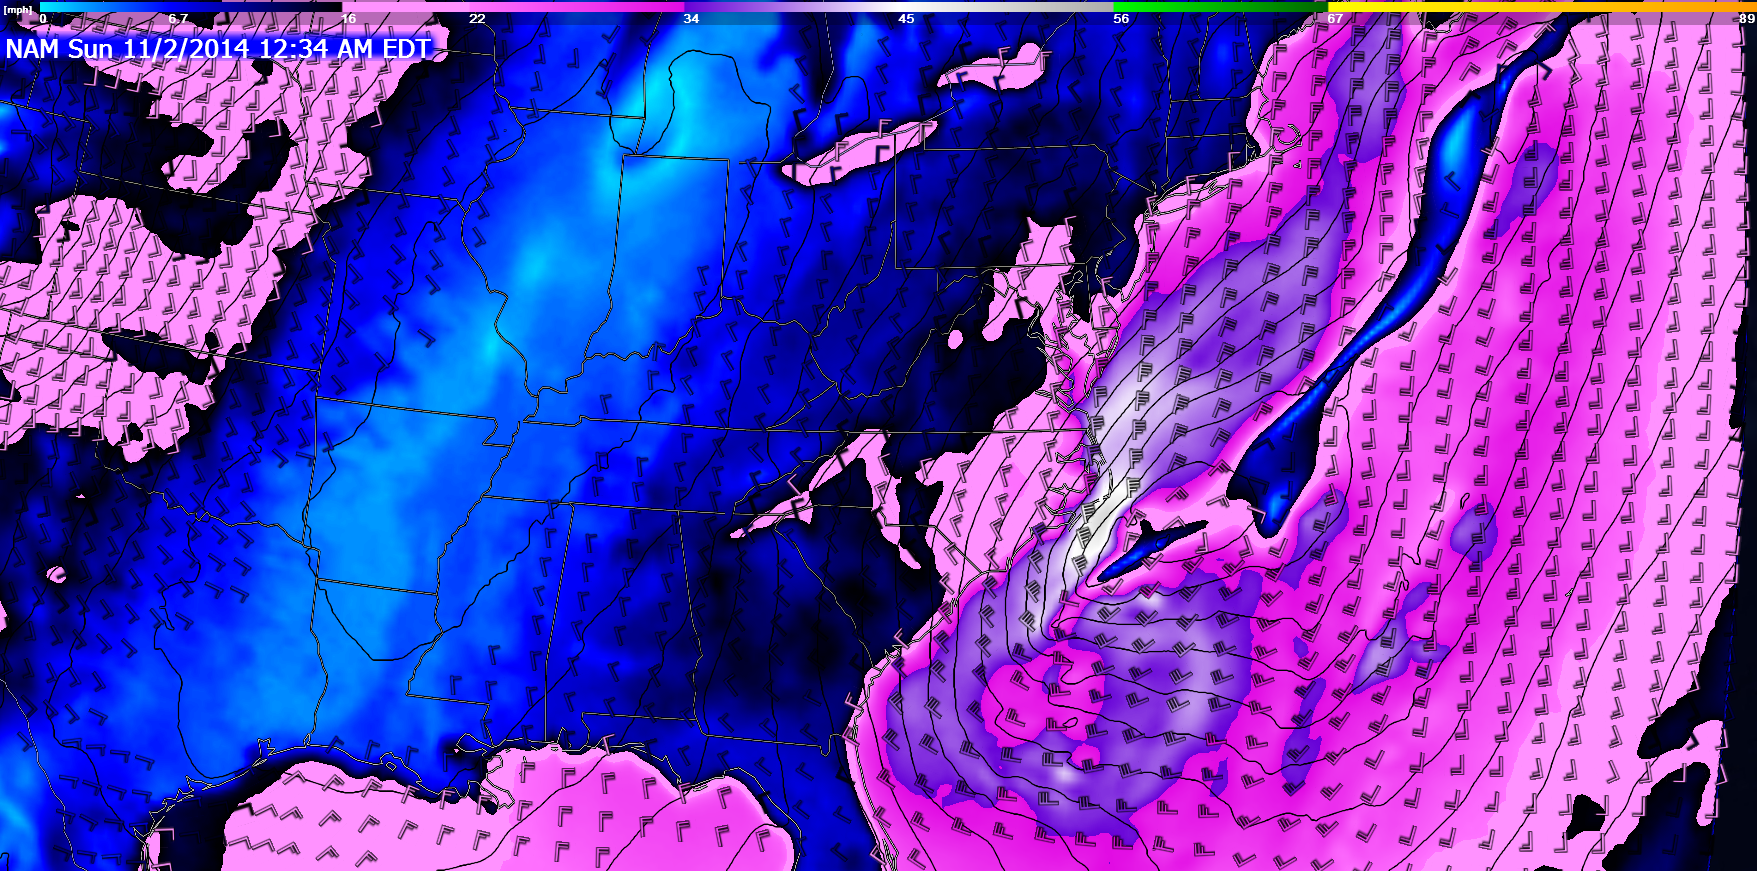 18Z NAM surface winds for Saturday night/Sunday morning.